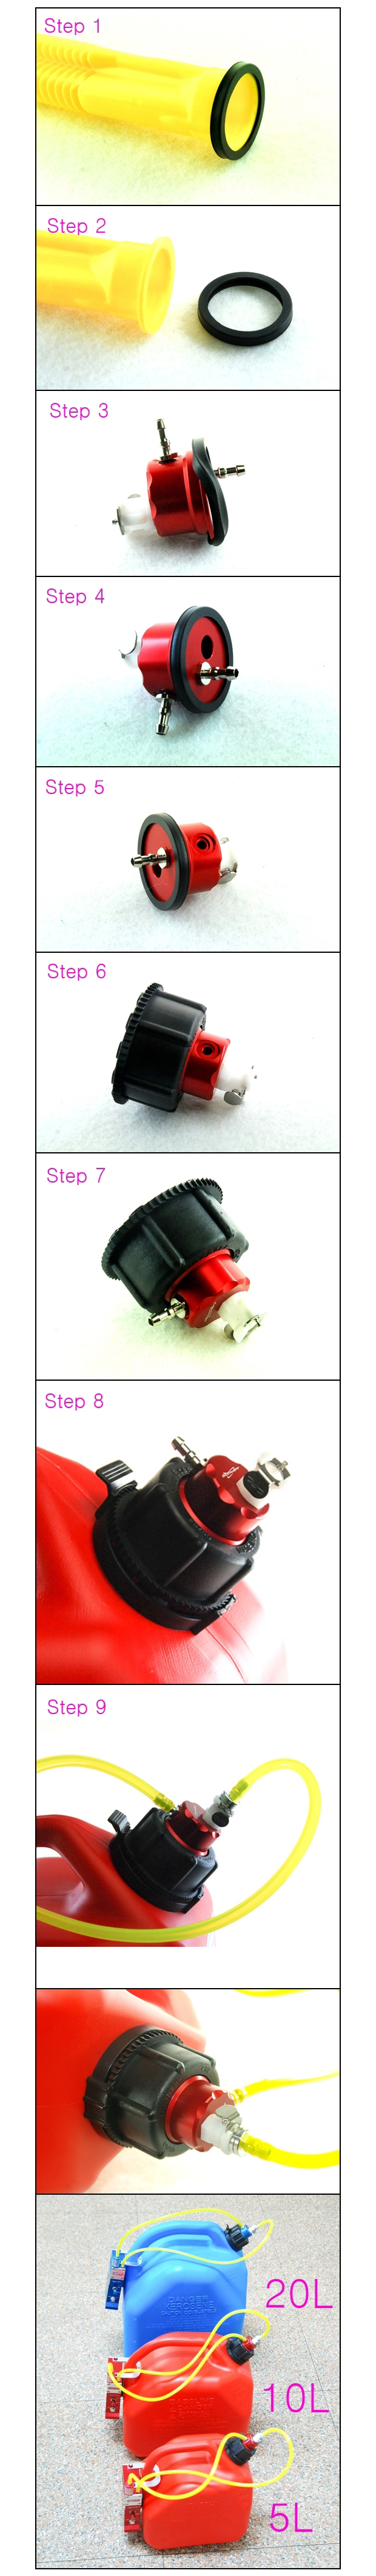 refueling cap installation instruction steps